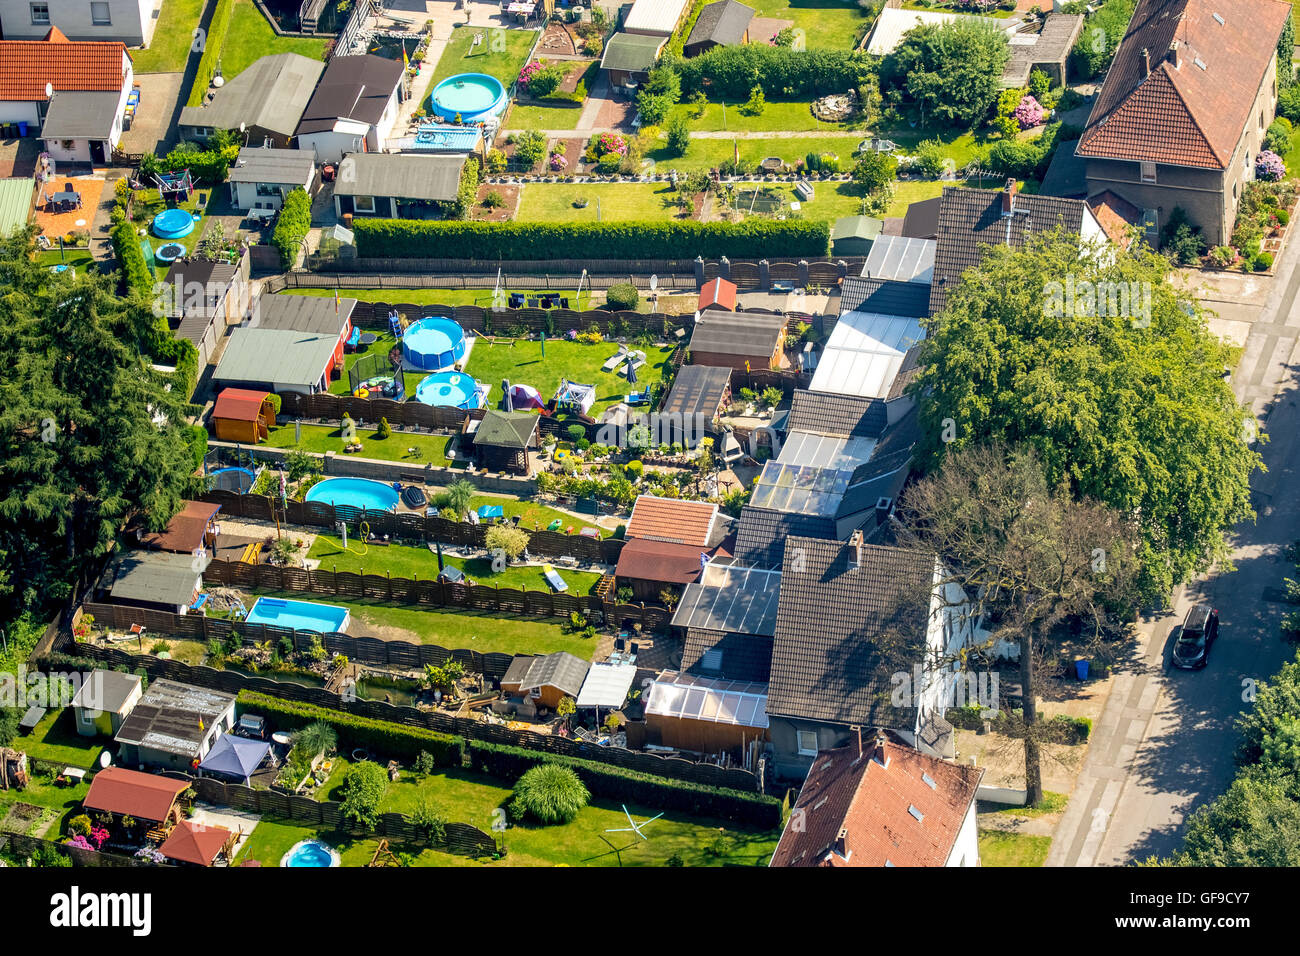 Aerial view, neighboring gardens with hedges and fences, rubber pools, neighborhood, Gladbeck, Ruhr area, North - Stock Image